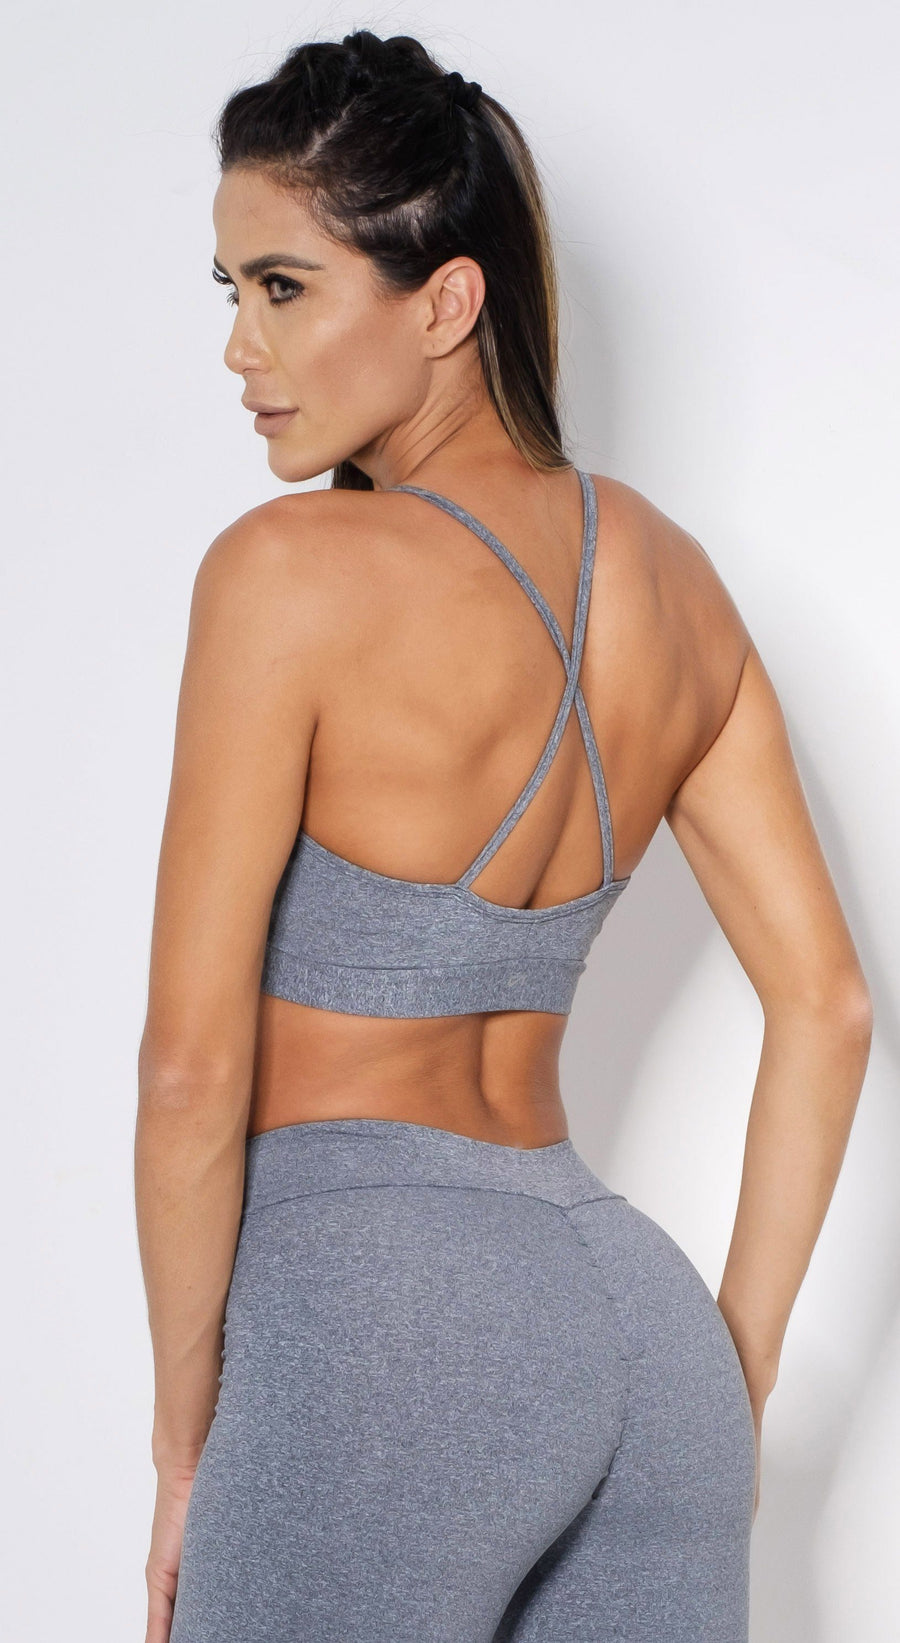 Brazilian Sports Bra - Strappy Gray